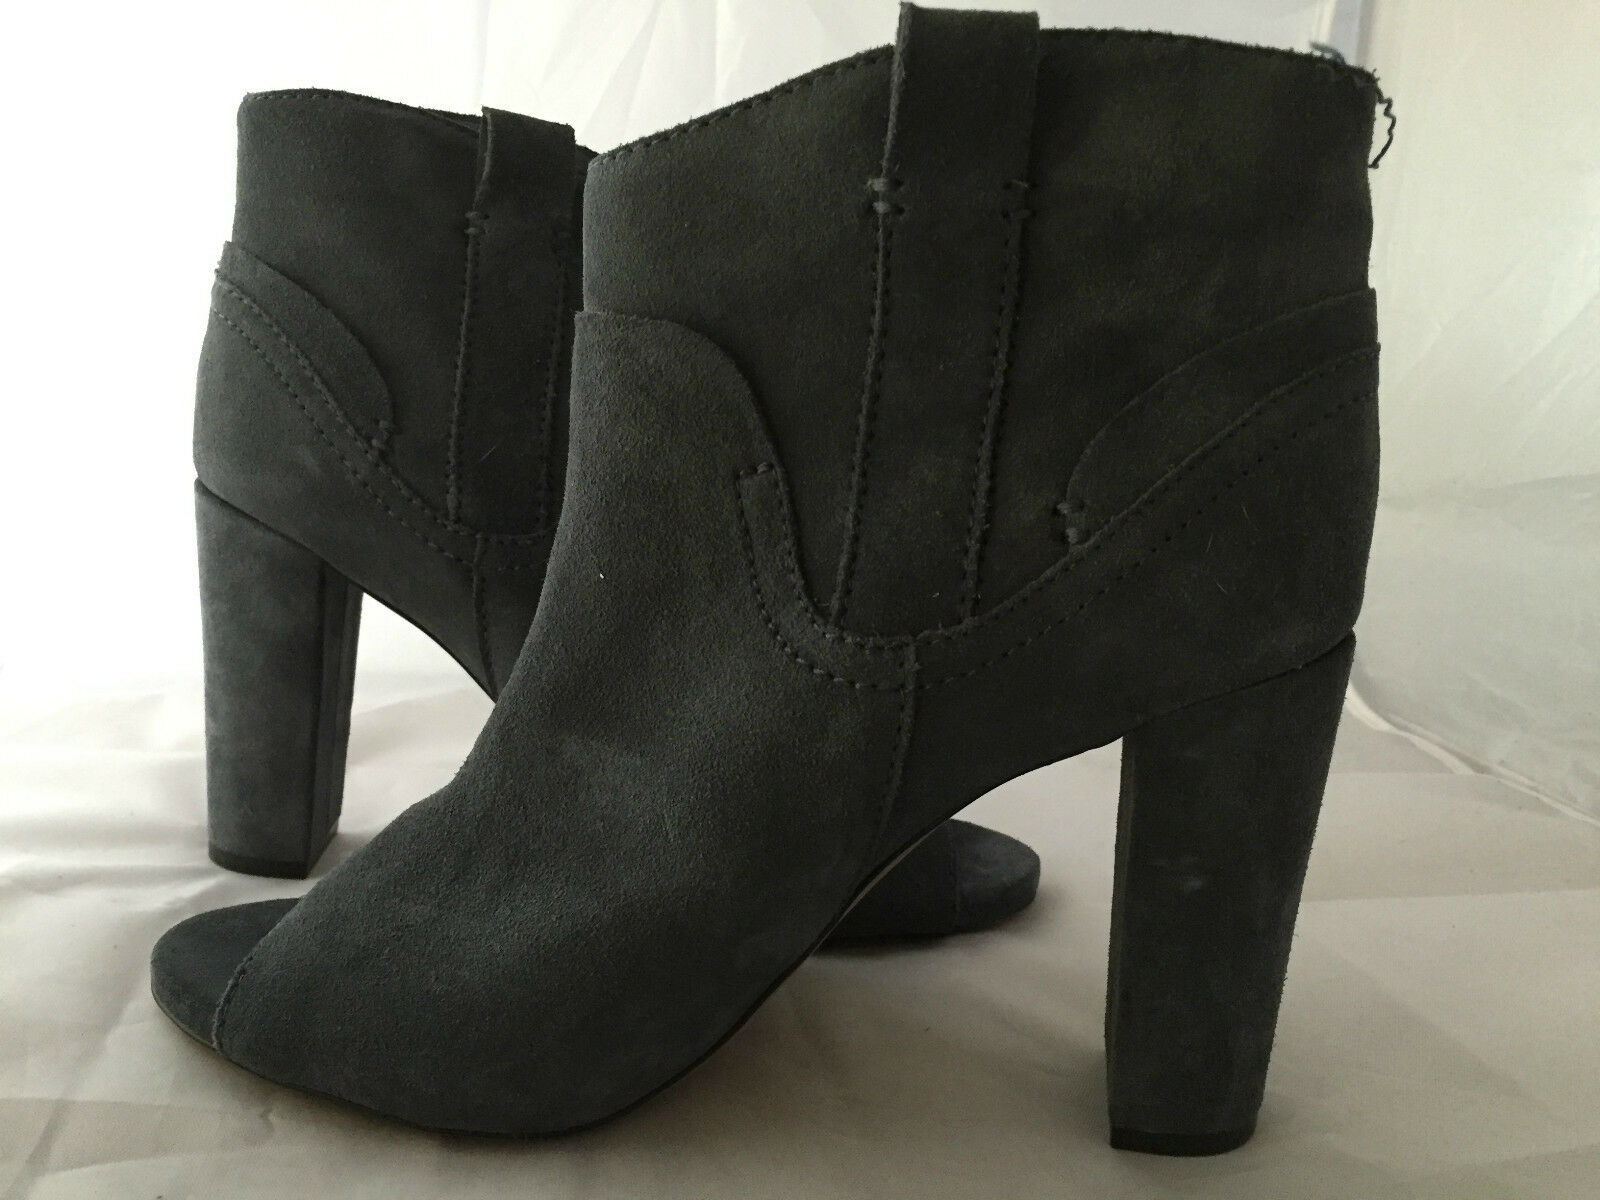 NEW Vince Camuto 'Camey' Open Toe Grey Suede Bootie, Women Size 10.5,